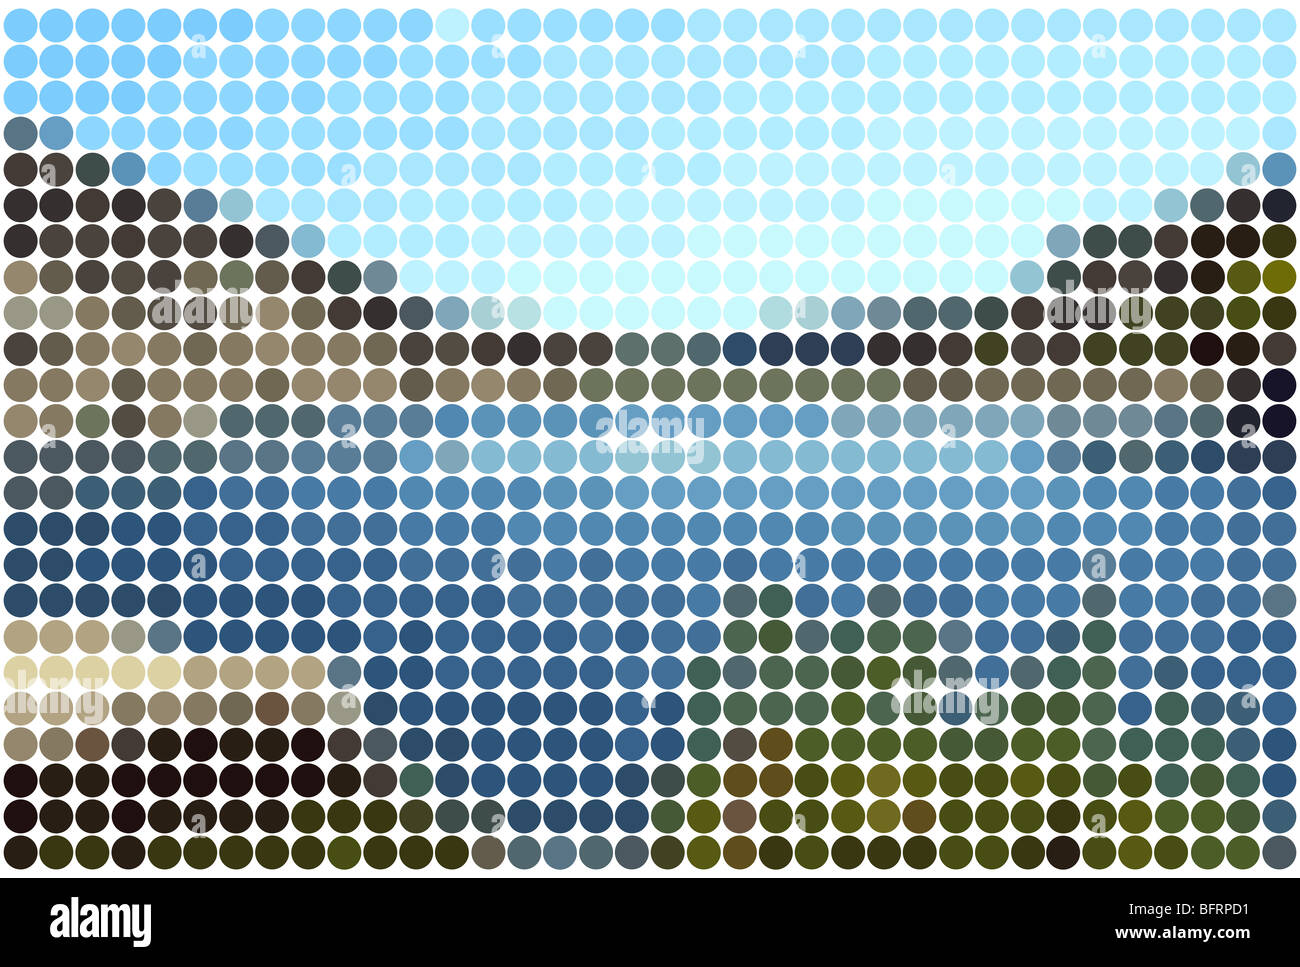 landscape background with solid colored circles in mosaic tile effect - Stock Image